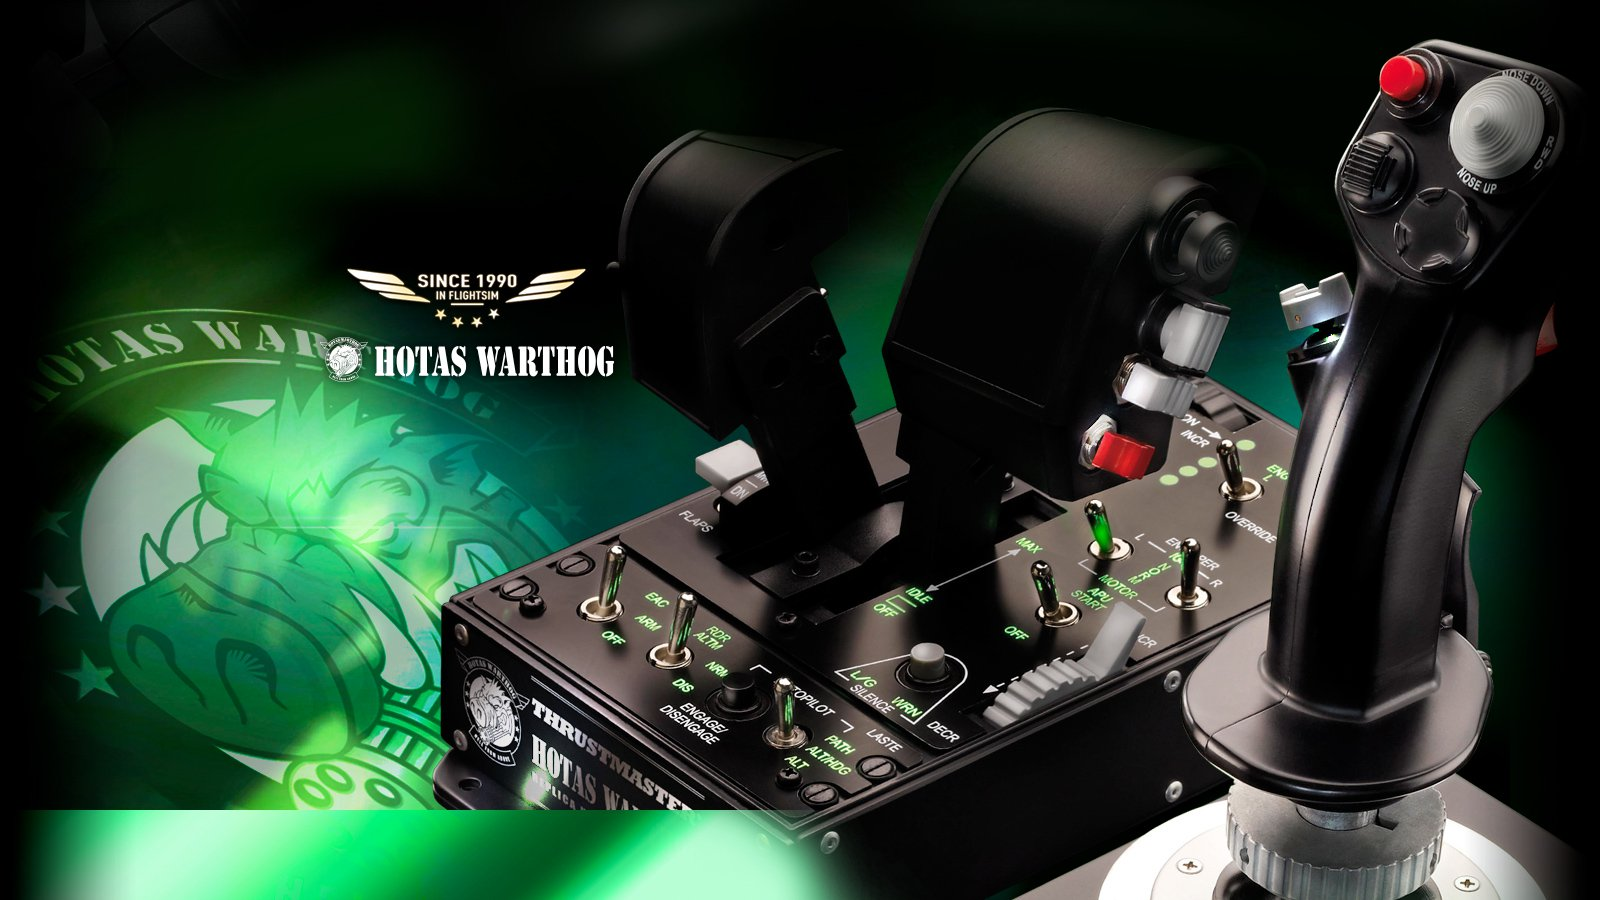 Thrustmaster HOTAS Warthog Flight Stick Joystick For PC Flight Simulation